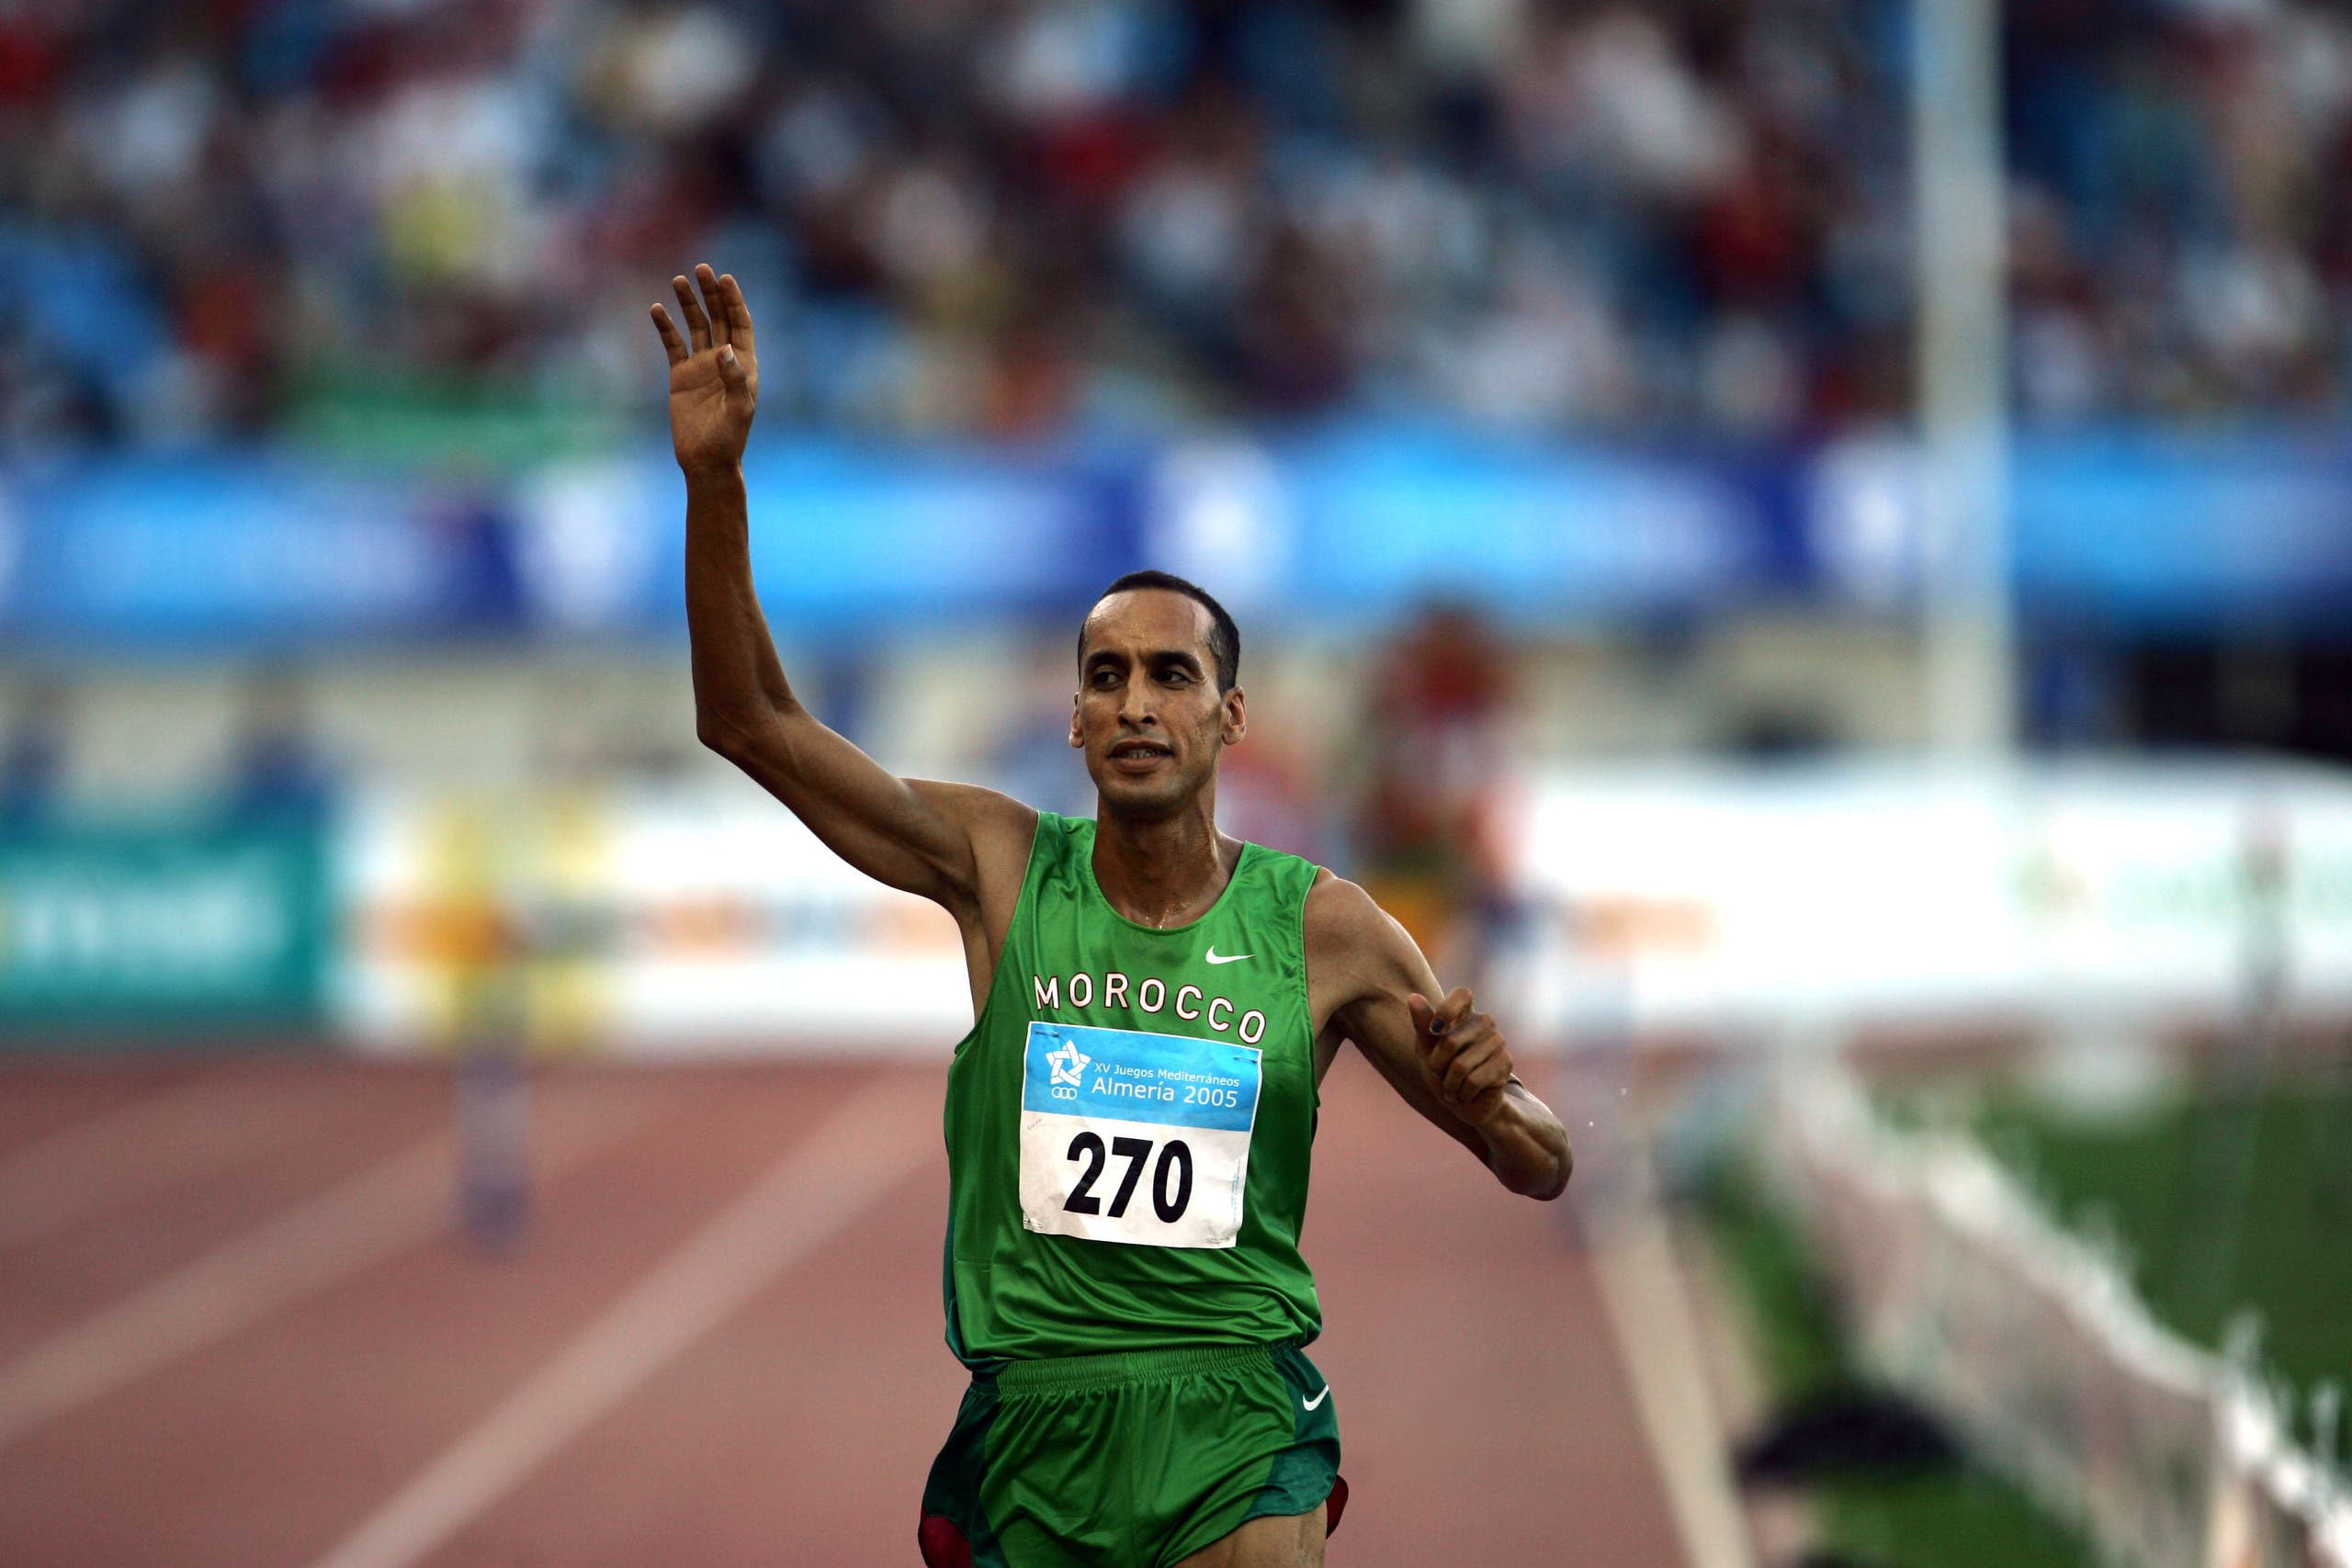 Morocco's Boulami celebrates winning men's 3000 metres steeplechase at the XV Mediterranean Games Almeria 2005 in Almeria. Morocco's Brahim Boulami celebrates winning men's 3000 metres steeplechase final at the XV Mediterranean Games Almeria 2005, southern Spain, July 1, 2005. Boulami won the gold medal with Spain's Antonio Jimenez taking the silver and France's Gael Pencreach bronze. (Reuters)